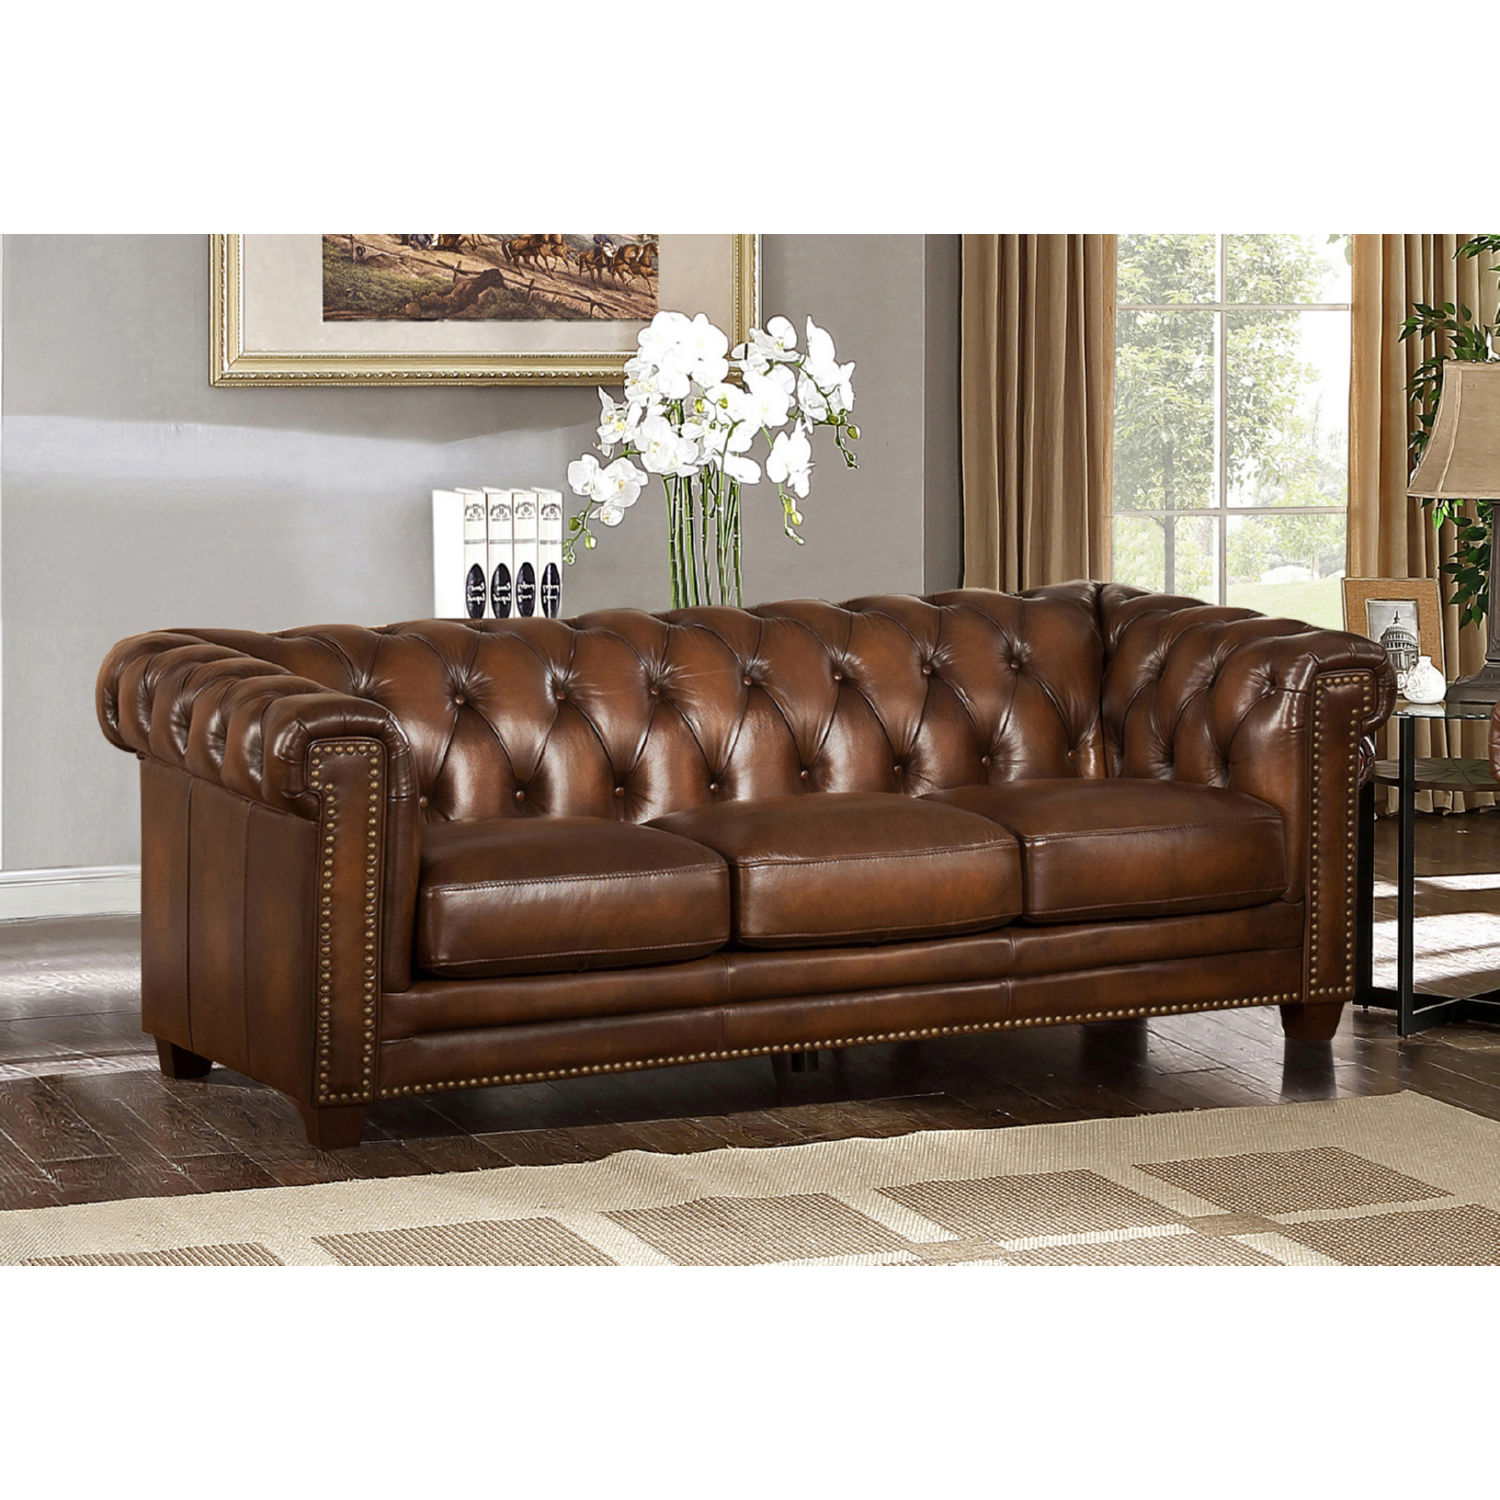 AMAX Leather Stanley Park II 100% Leather Sofa In Tufted Brown W/ Nailheads